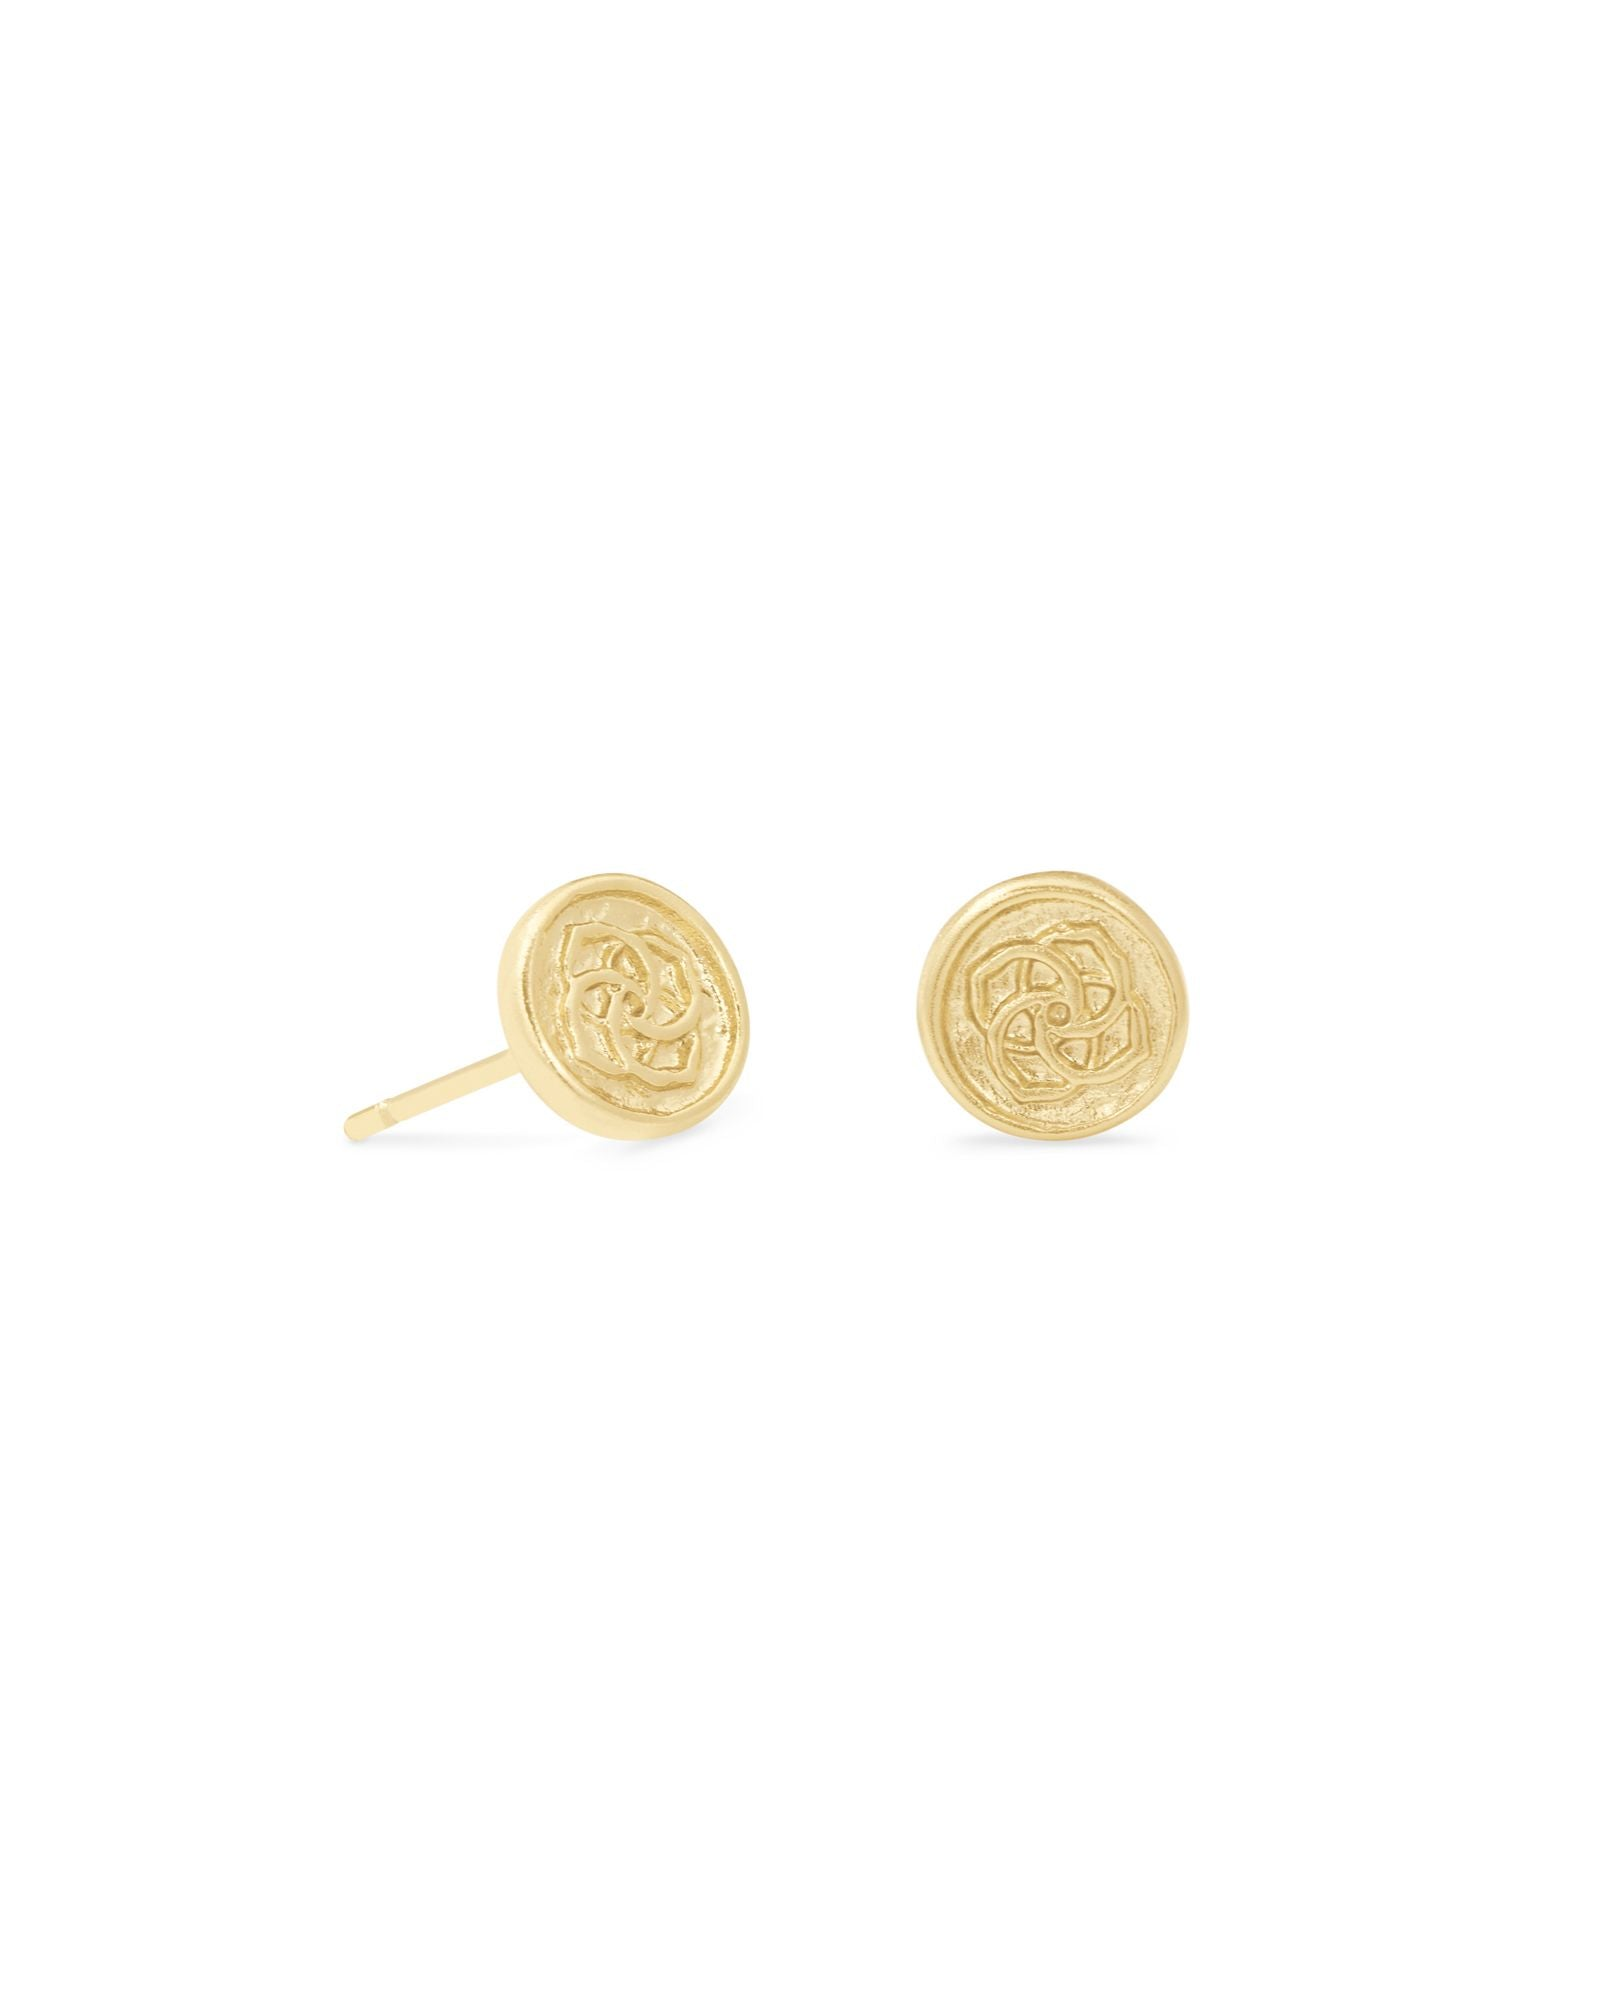 Dira Gold Coin Stud Earrings